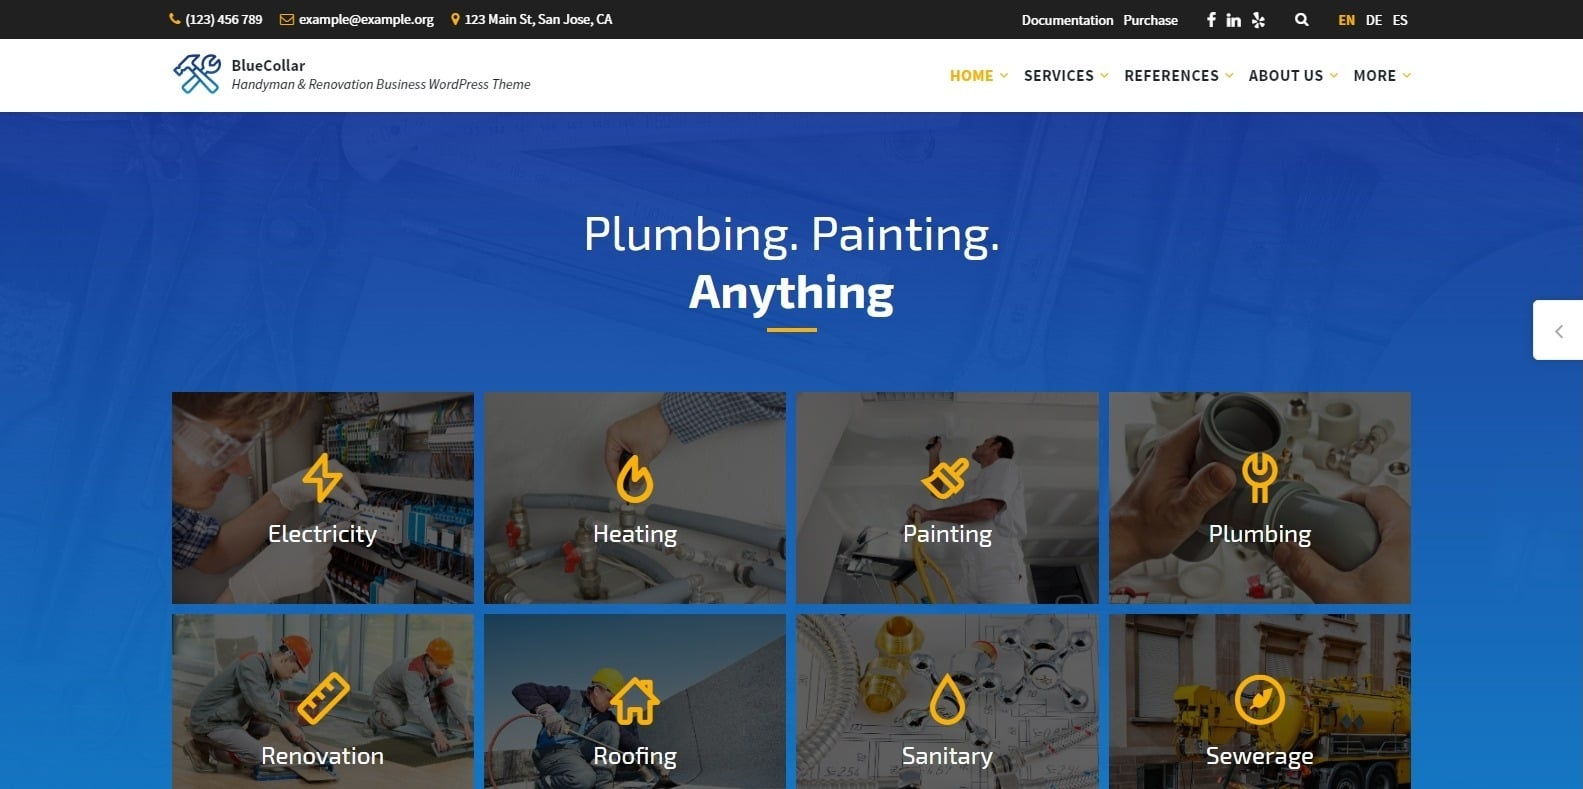 bluecollar-handyman-website-template-wordpress